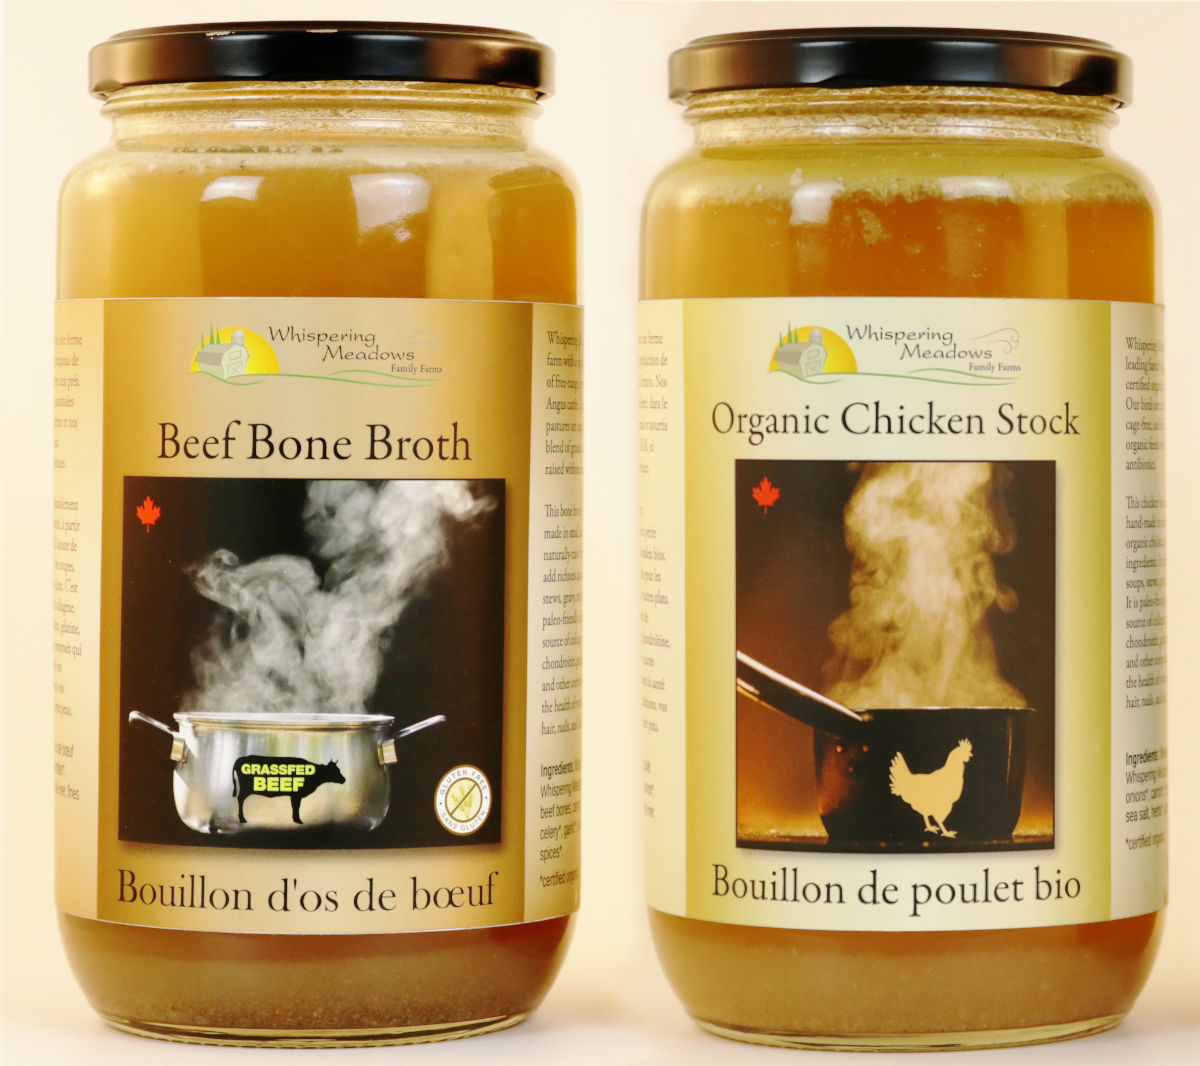 Order organic chicken stock and beef bone broth online, and we'll deliver them to your door from our local organic family farm.